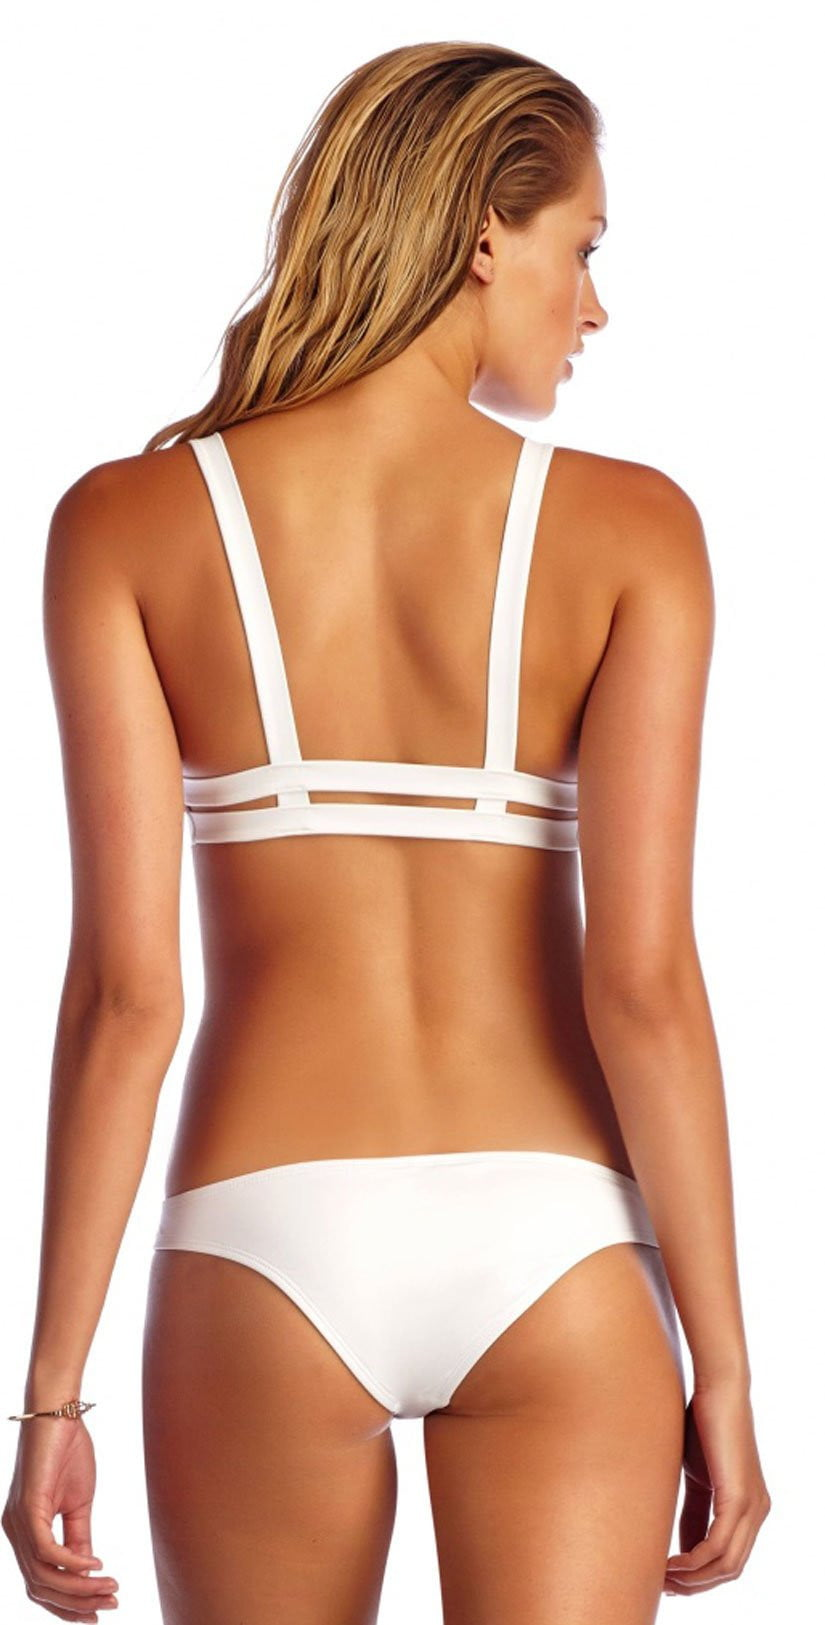 Vitamin A Eco Neutra Bralette Top in White 40T-ECW: